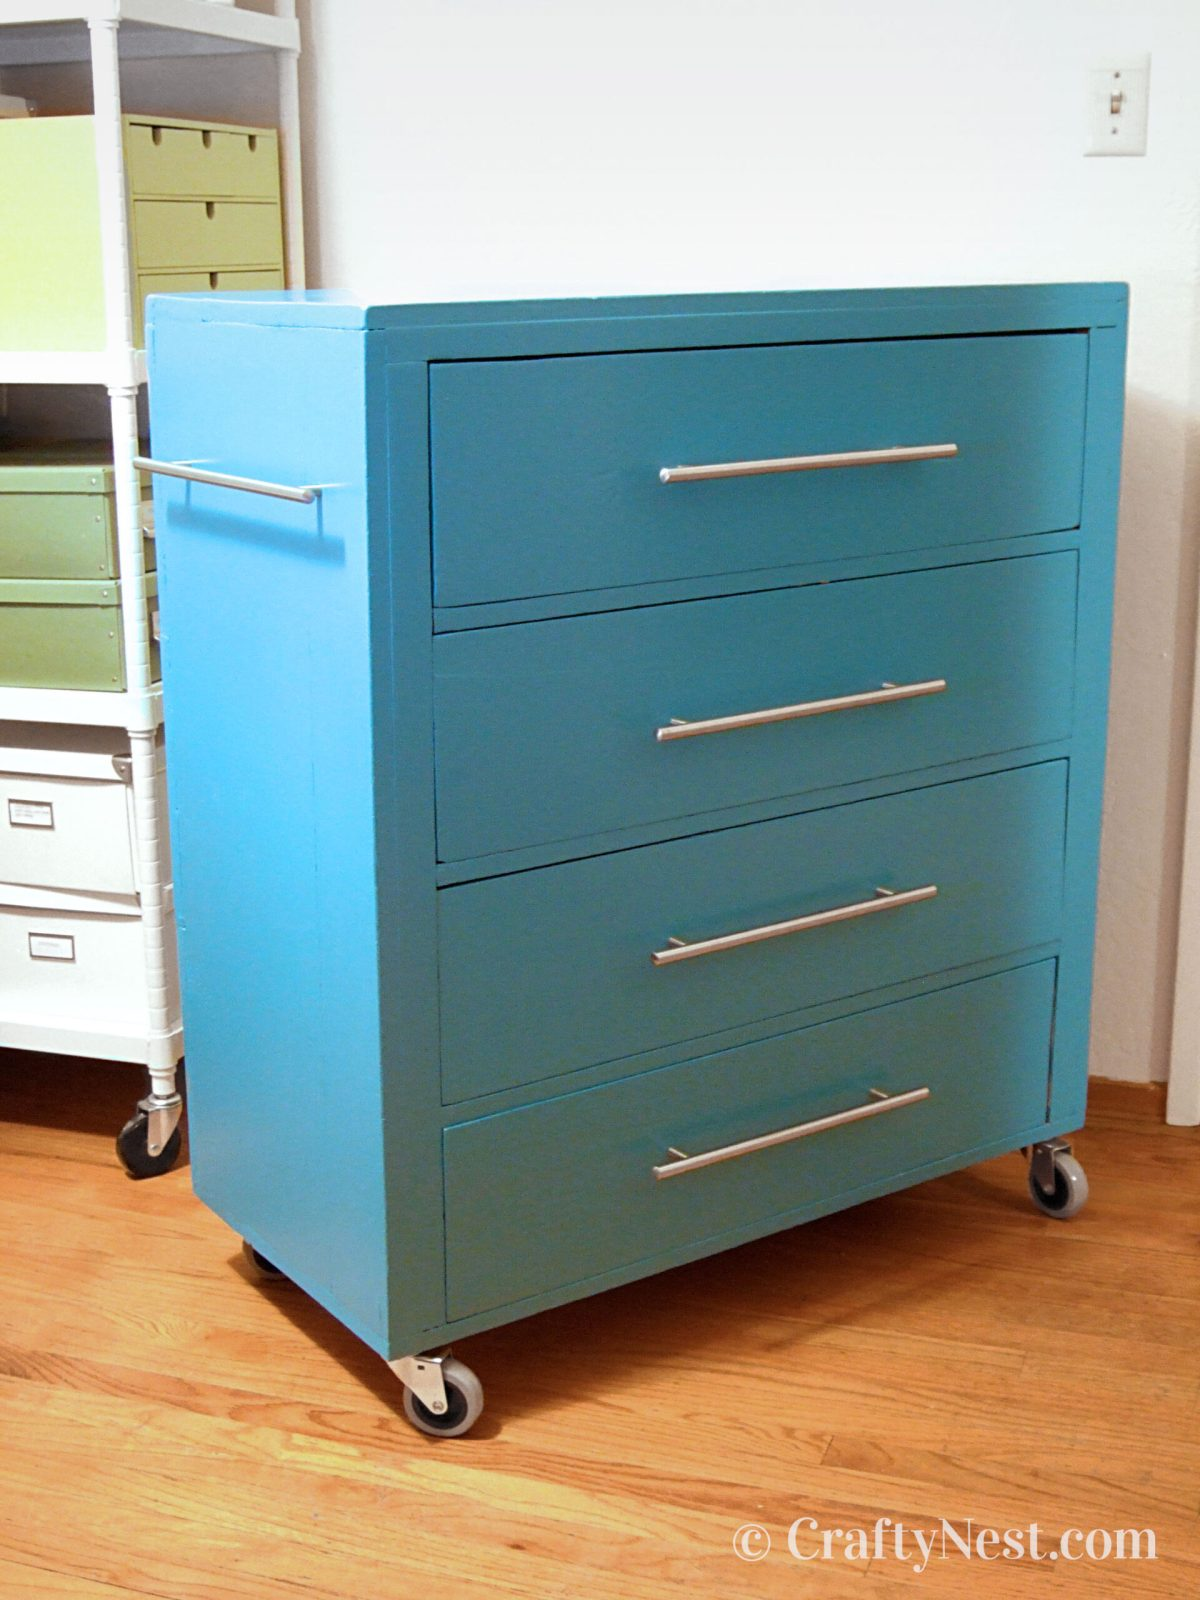 A chest of drawers painted blue, photo